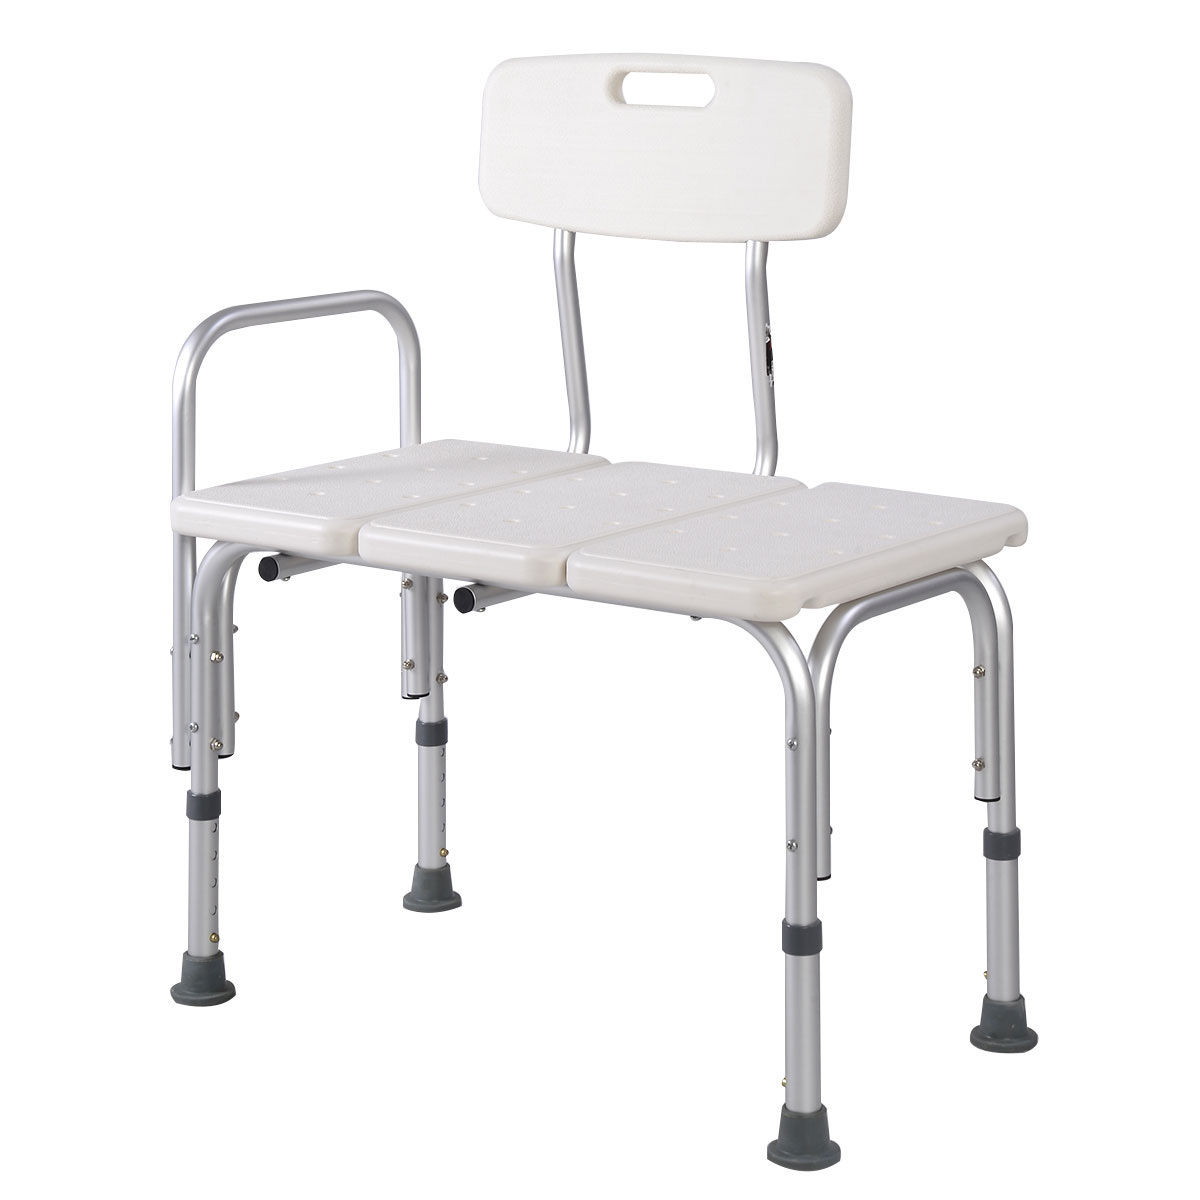 costway shower bath seat medical adjustable bathroom bath tub transfer bench stool chair